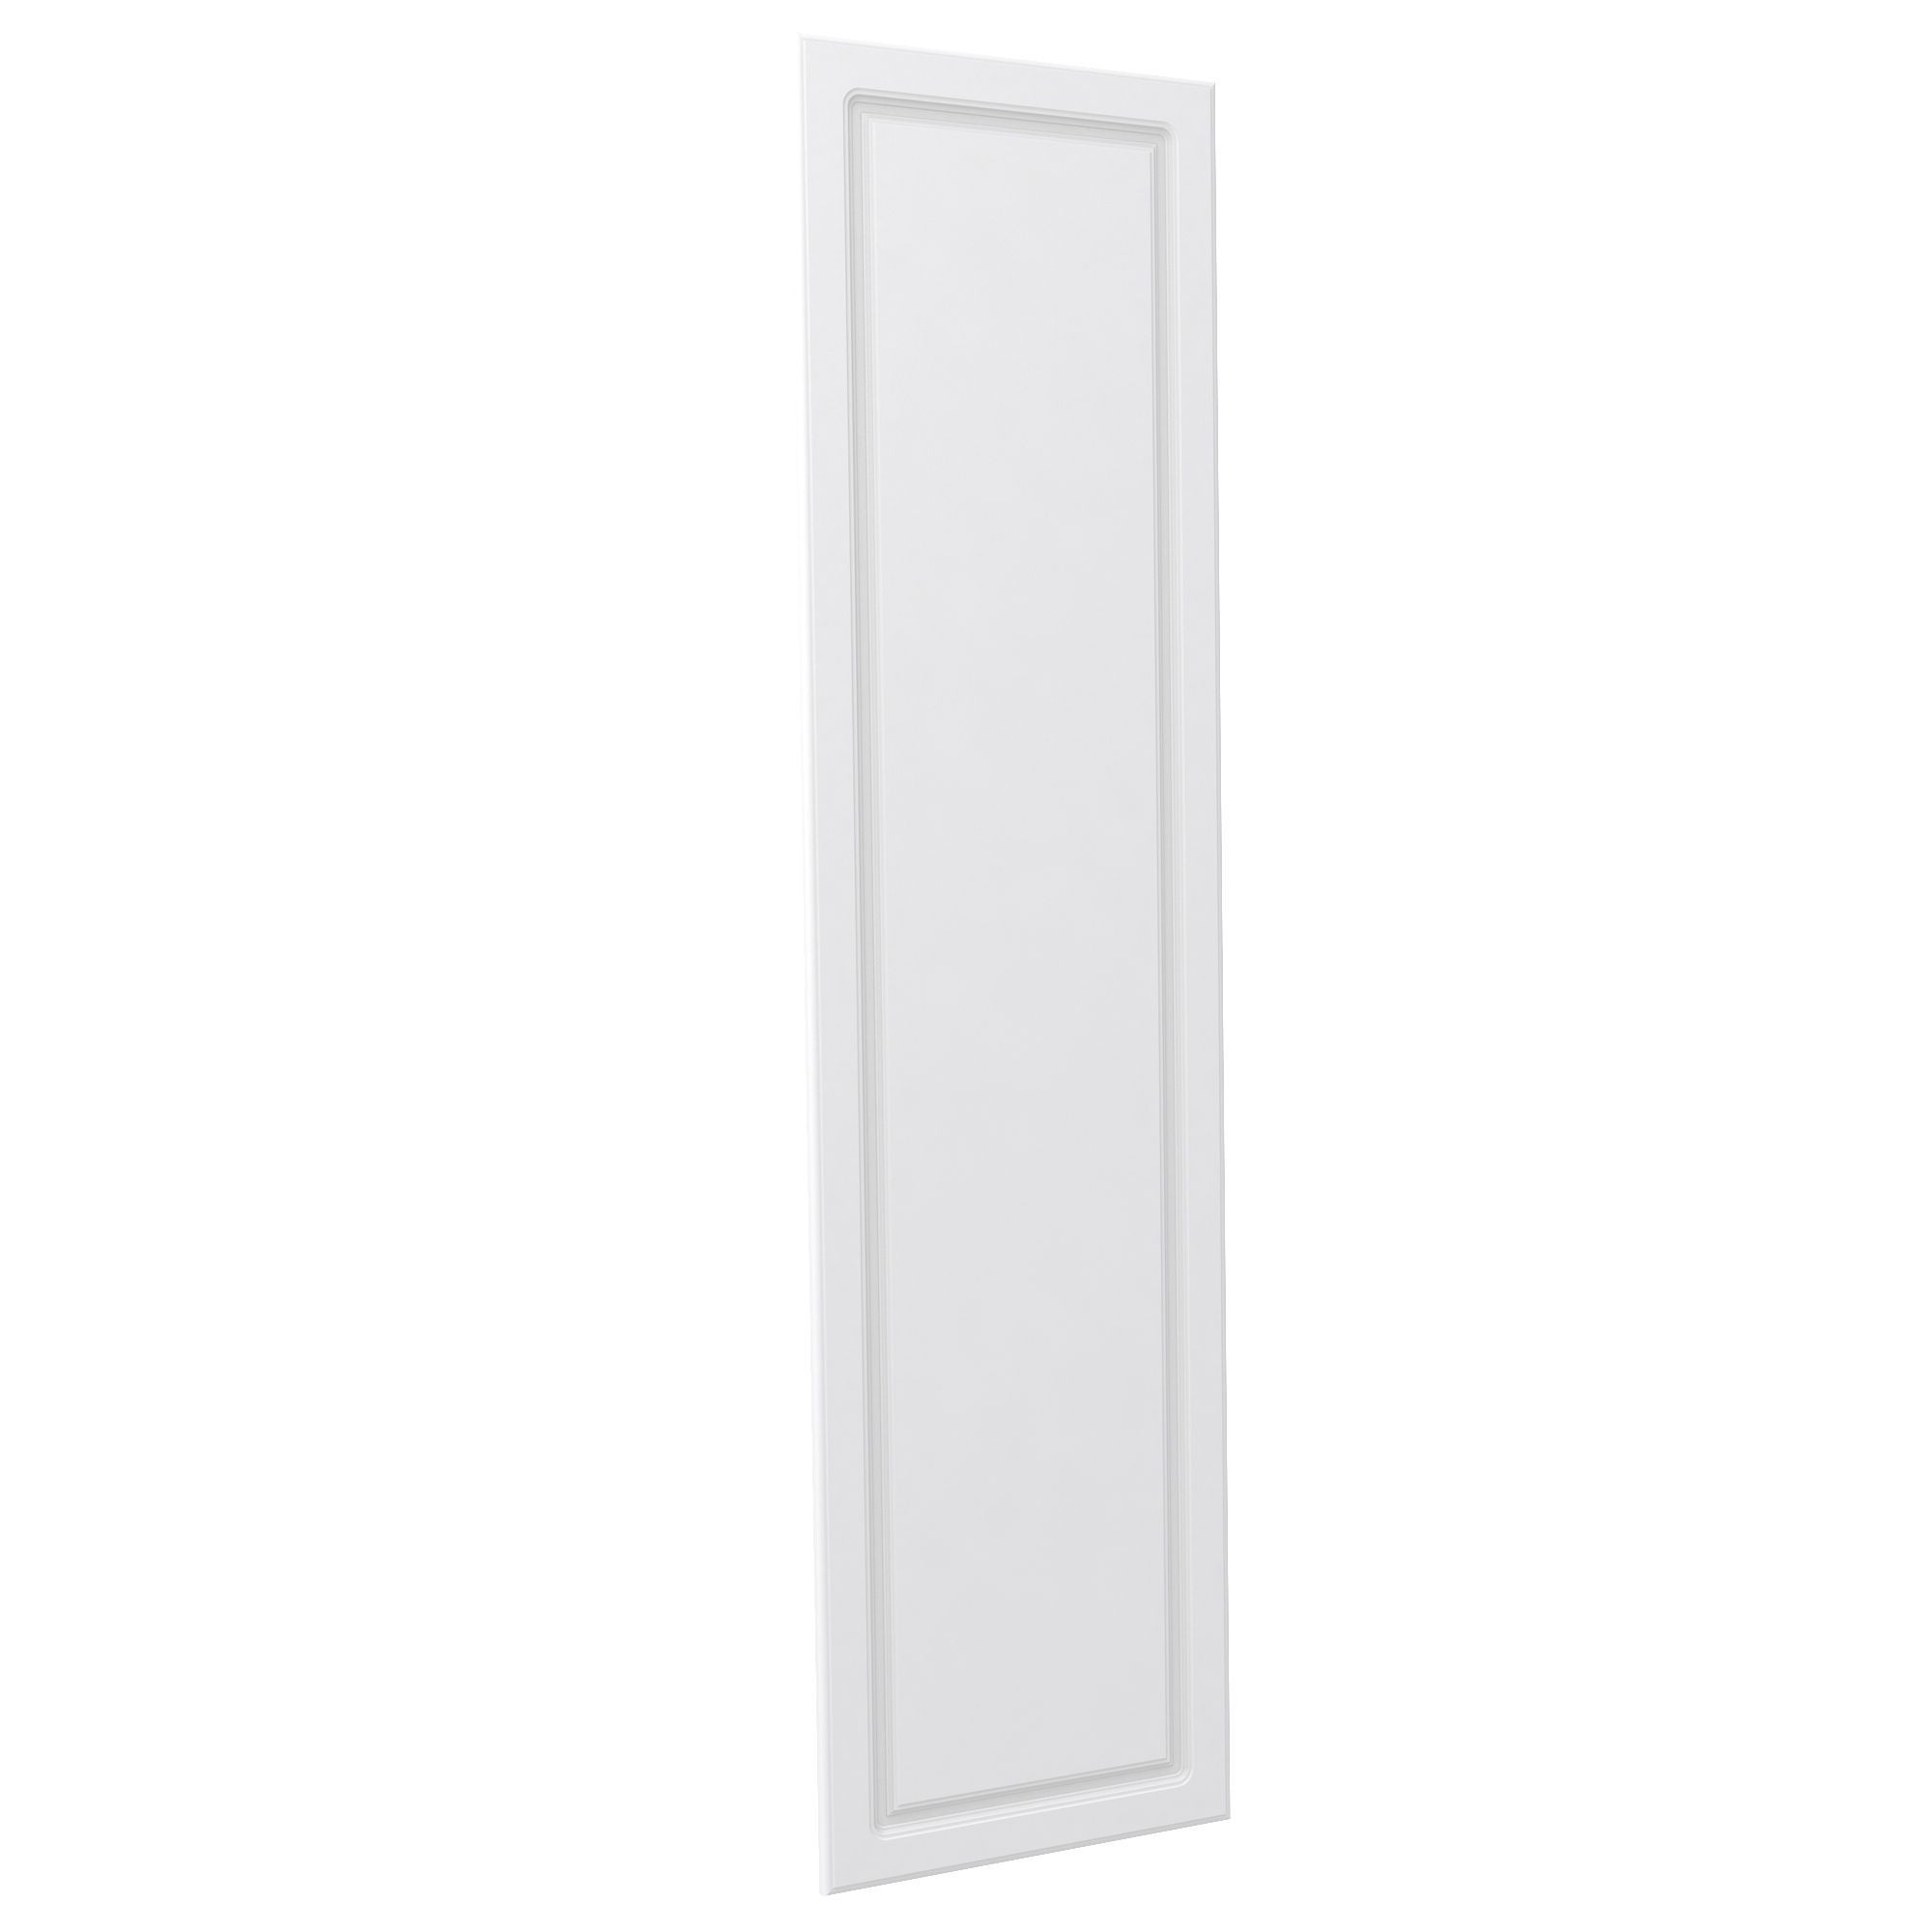 Darwin Modular White Wardrobe Door (h)1930mm (w)497mm